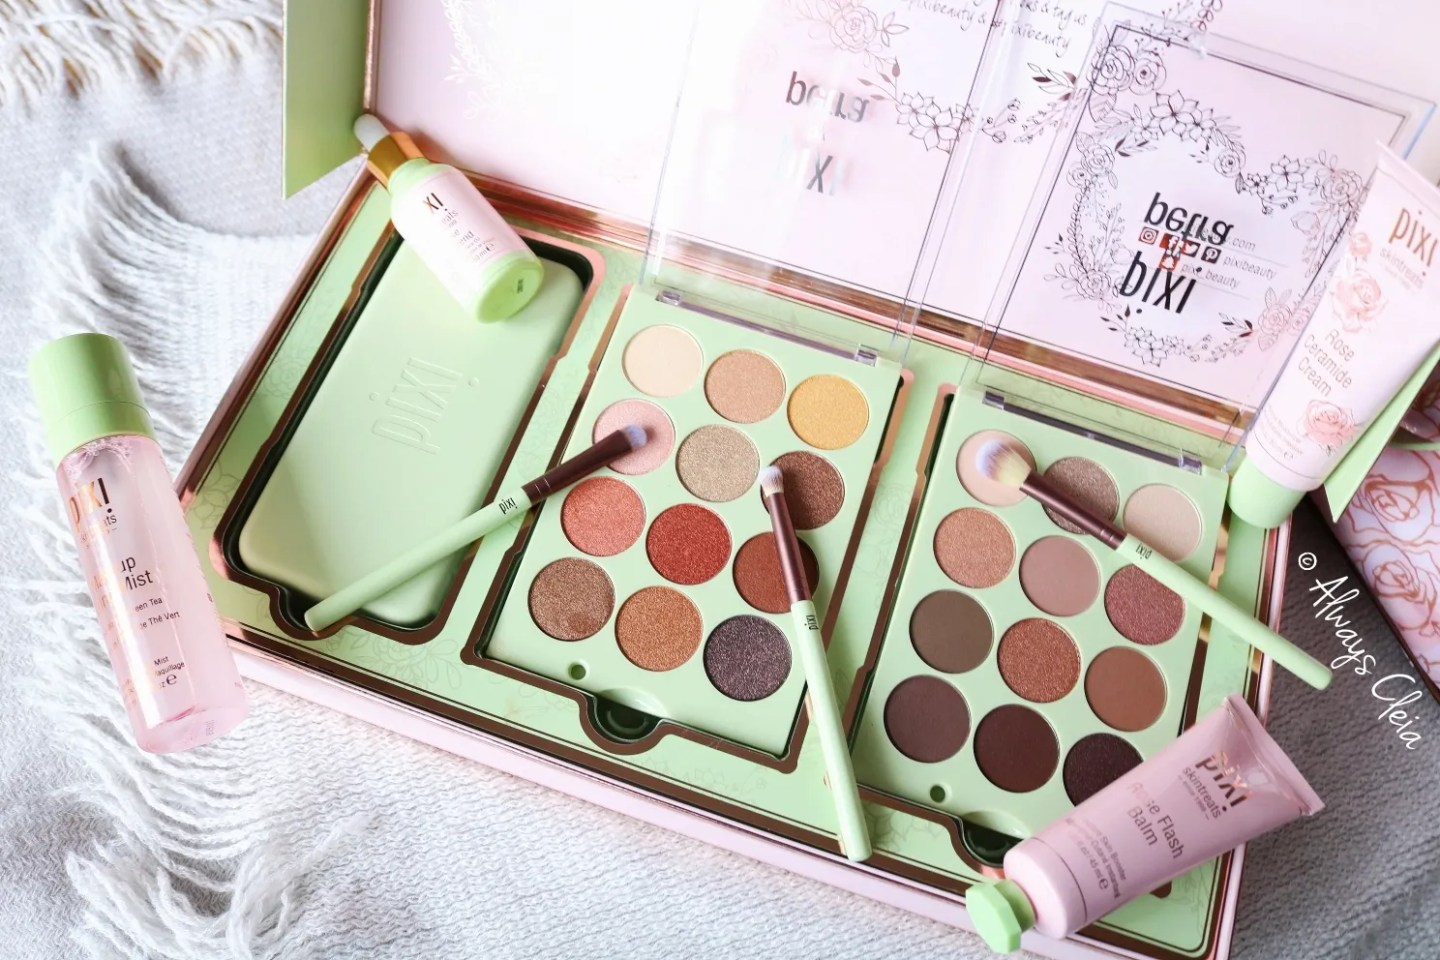 Pixi Eye Reflections PR Box